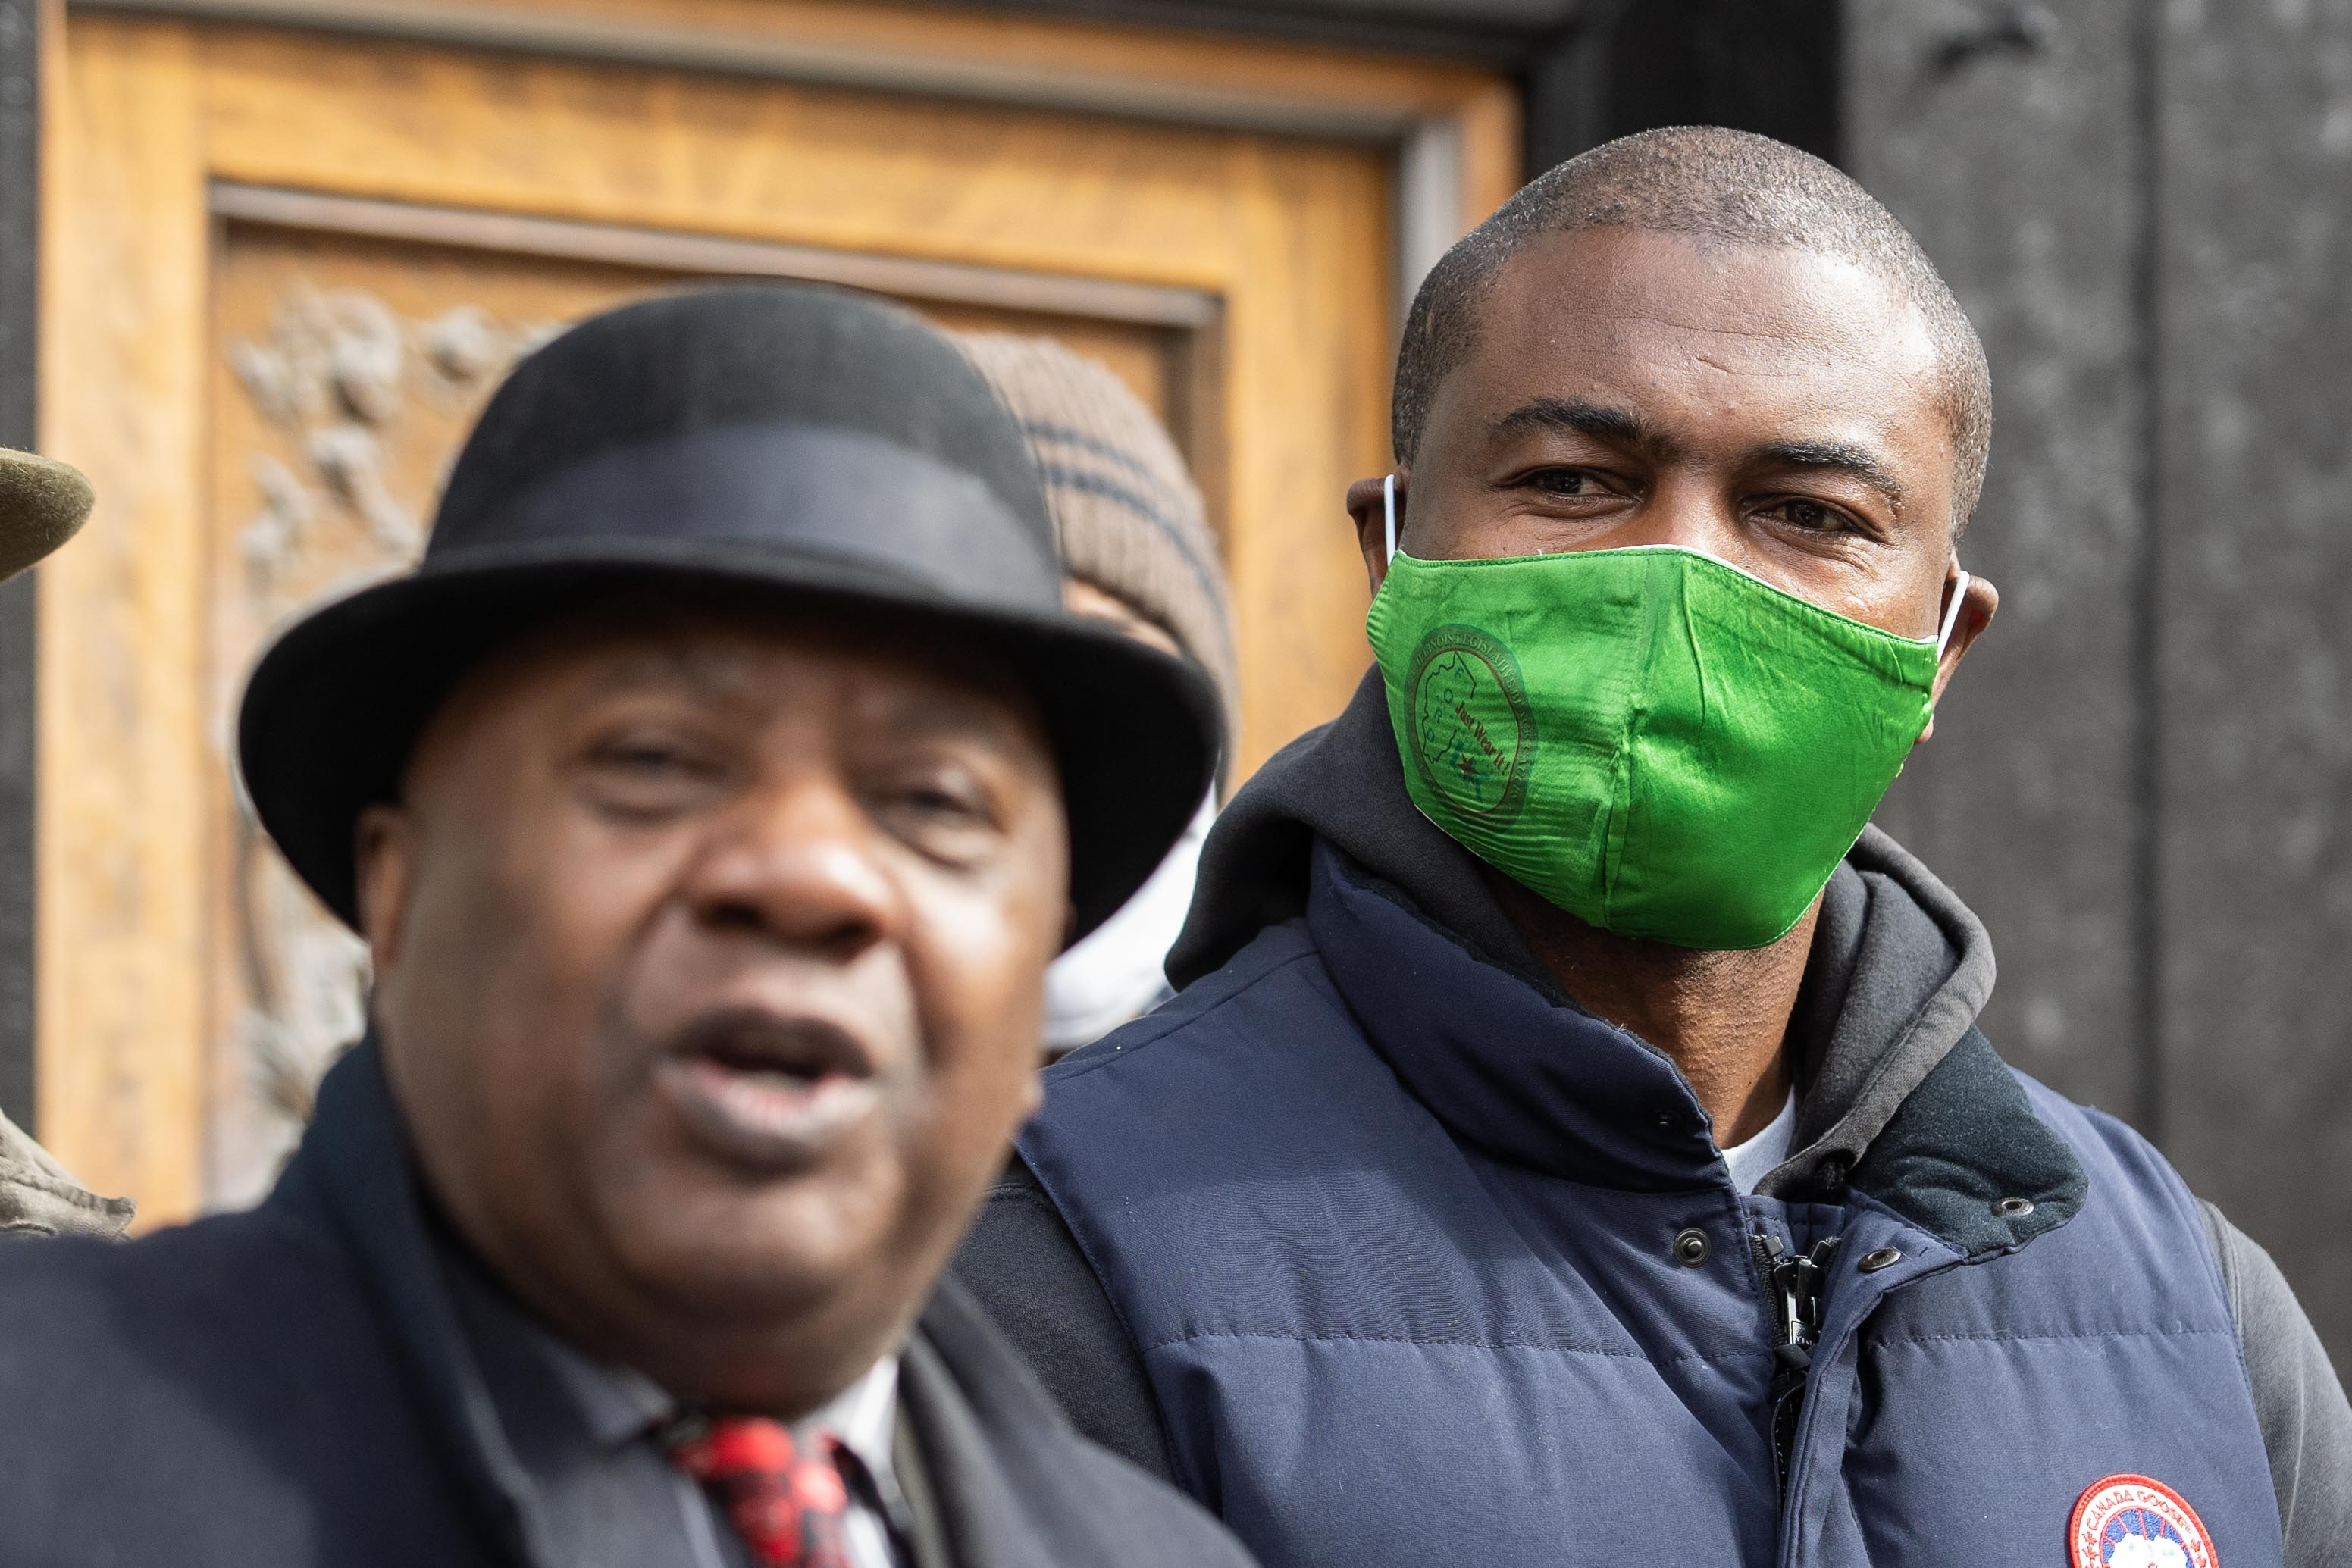 State Rep. La Shawn Ford listens as former state Sen. Ricky Hendon speaks during a press conference outside Nature's Care West Loop in the West Town neighborhood, where cannabis equity advocates announced the introduction of House Bill 327, Tuesday morning, March 16, 2021. | Pat Nabong/Sun-Times